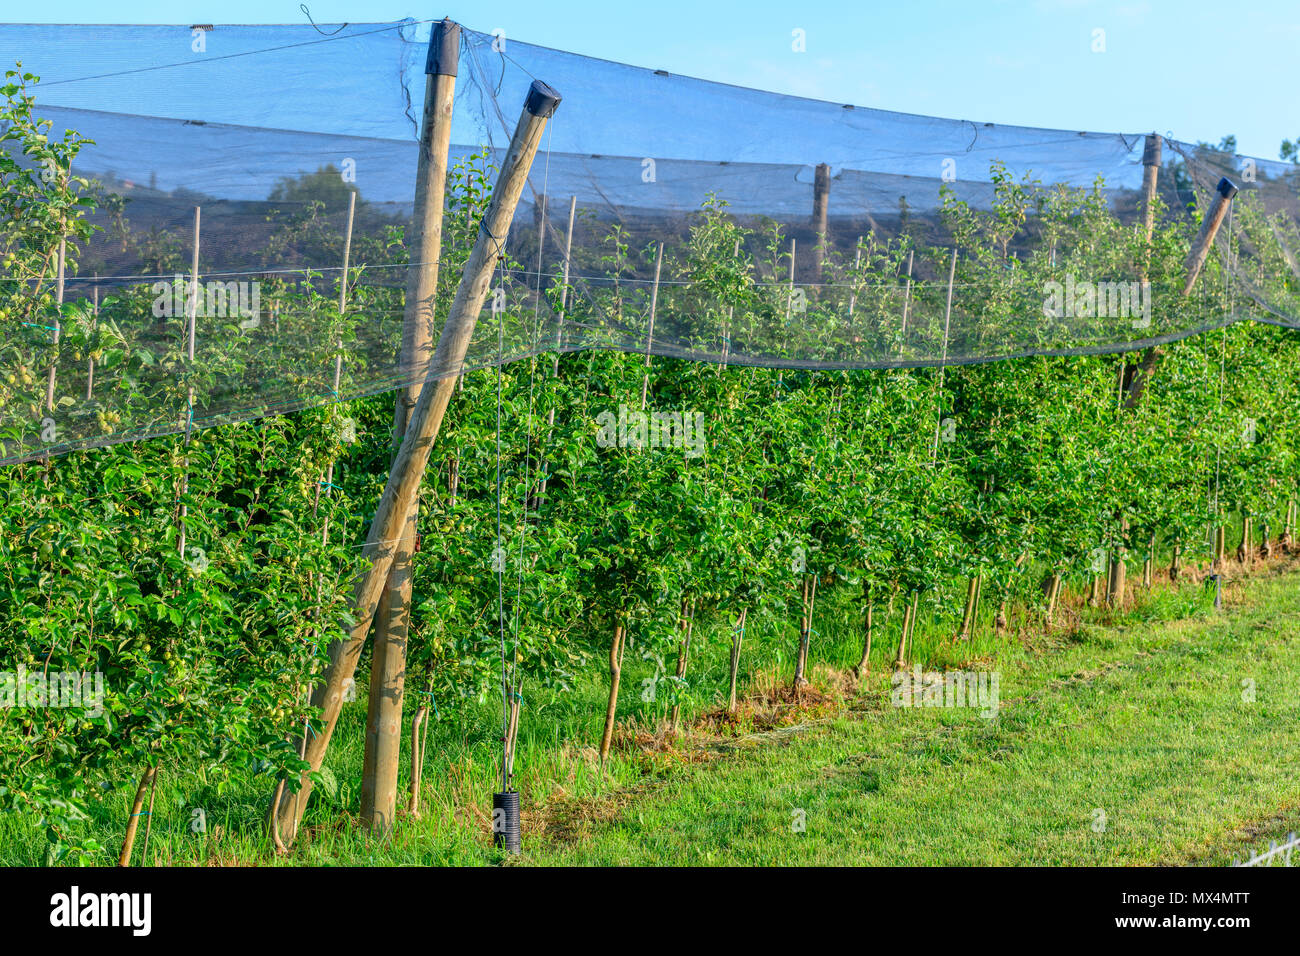 Apple orchards with Protection net against hail and elements - Stock Image